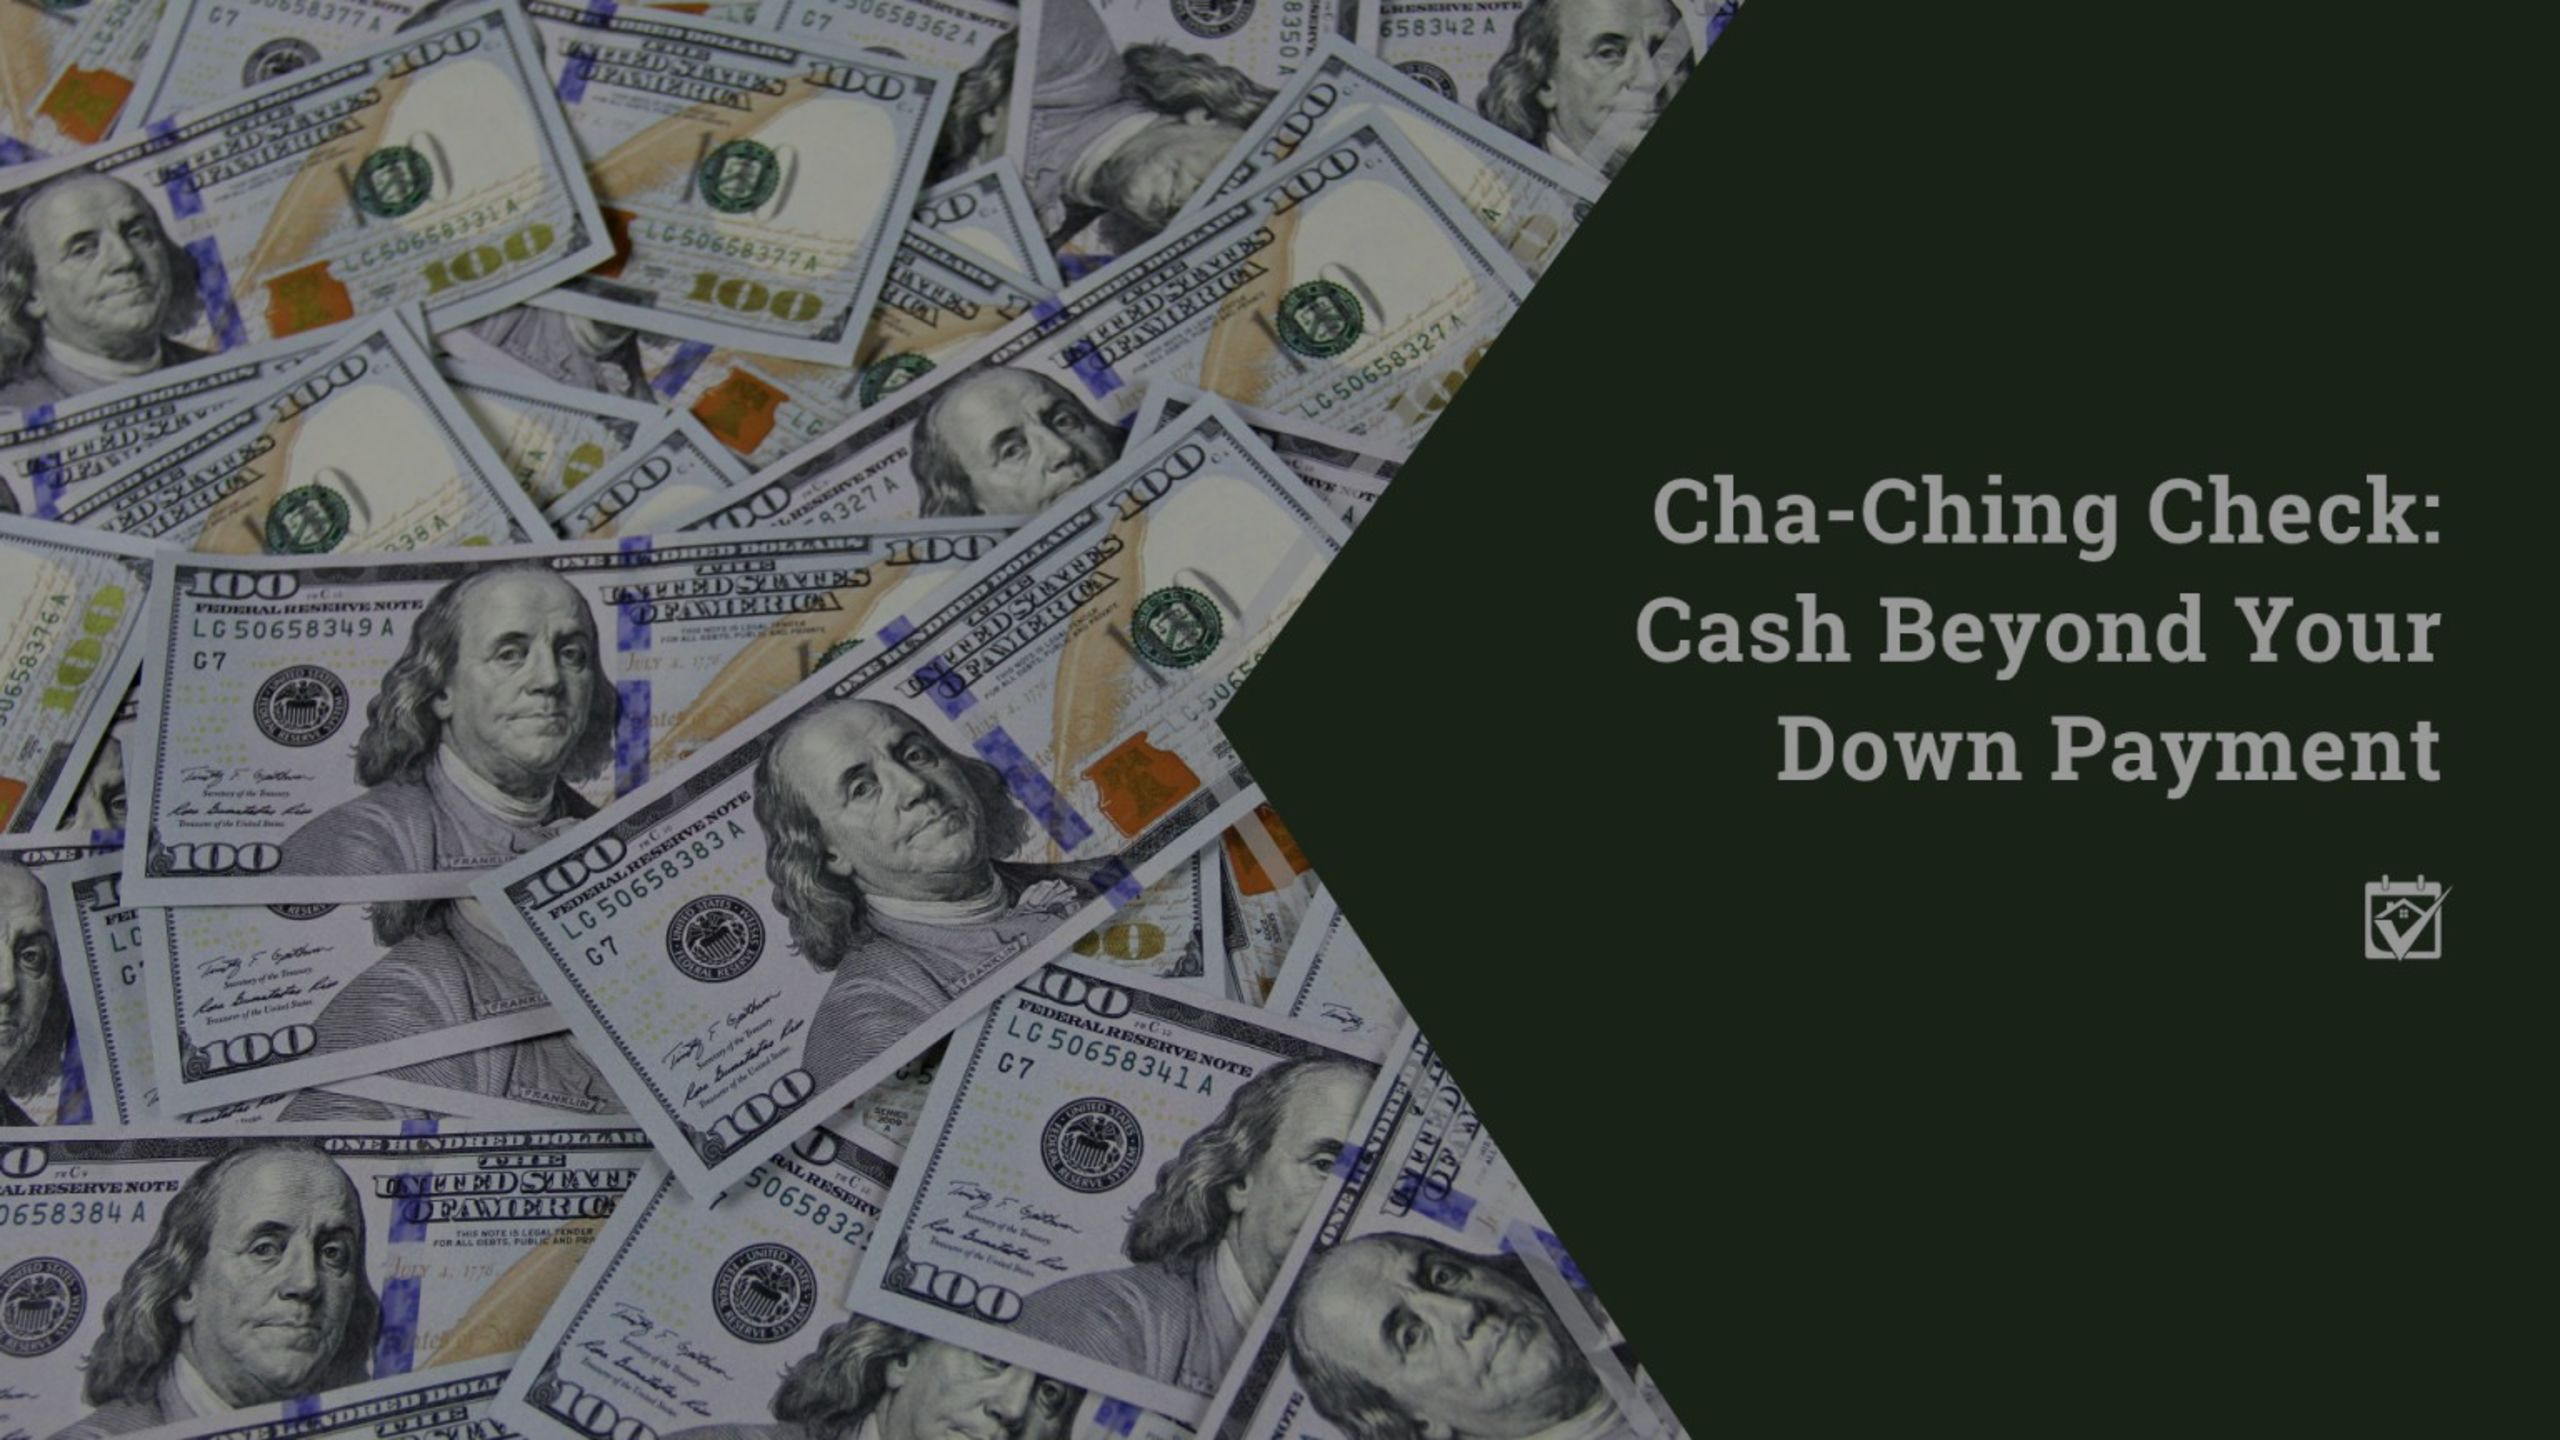 Cha-Ching Check: Cash Beyond Your Down Payment